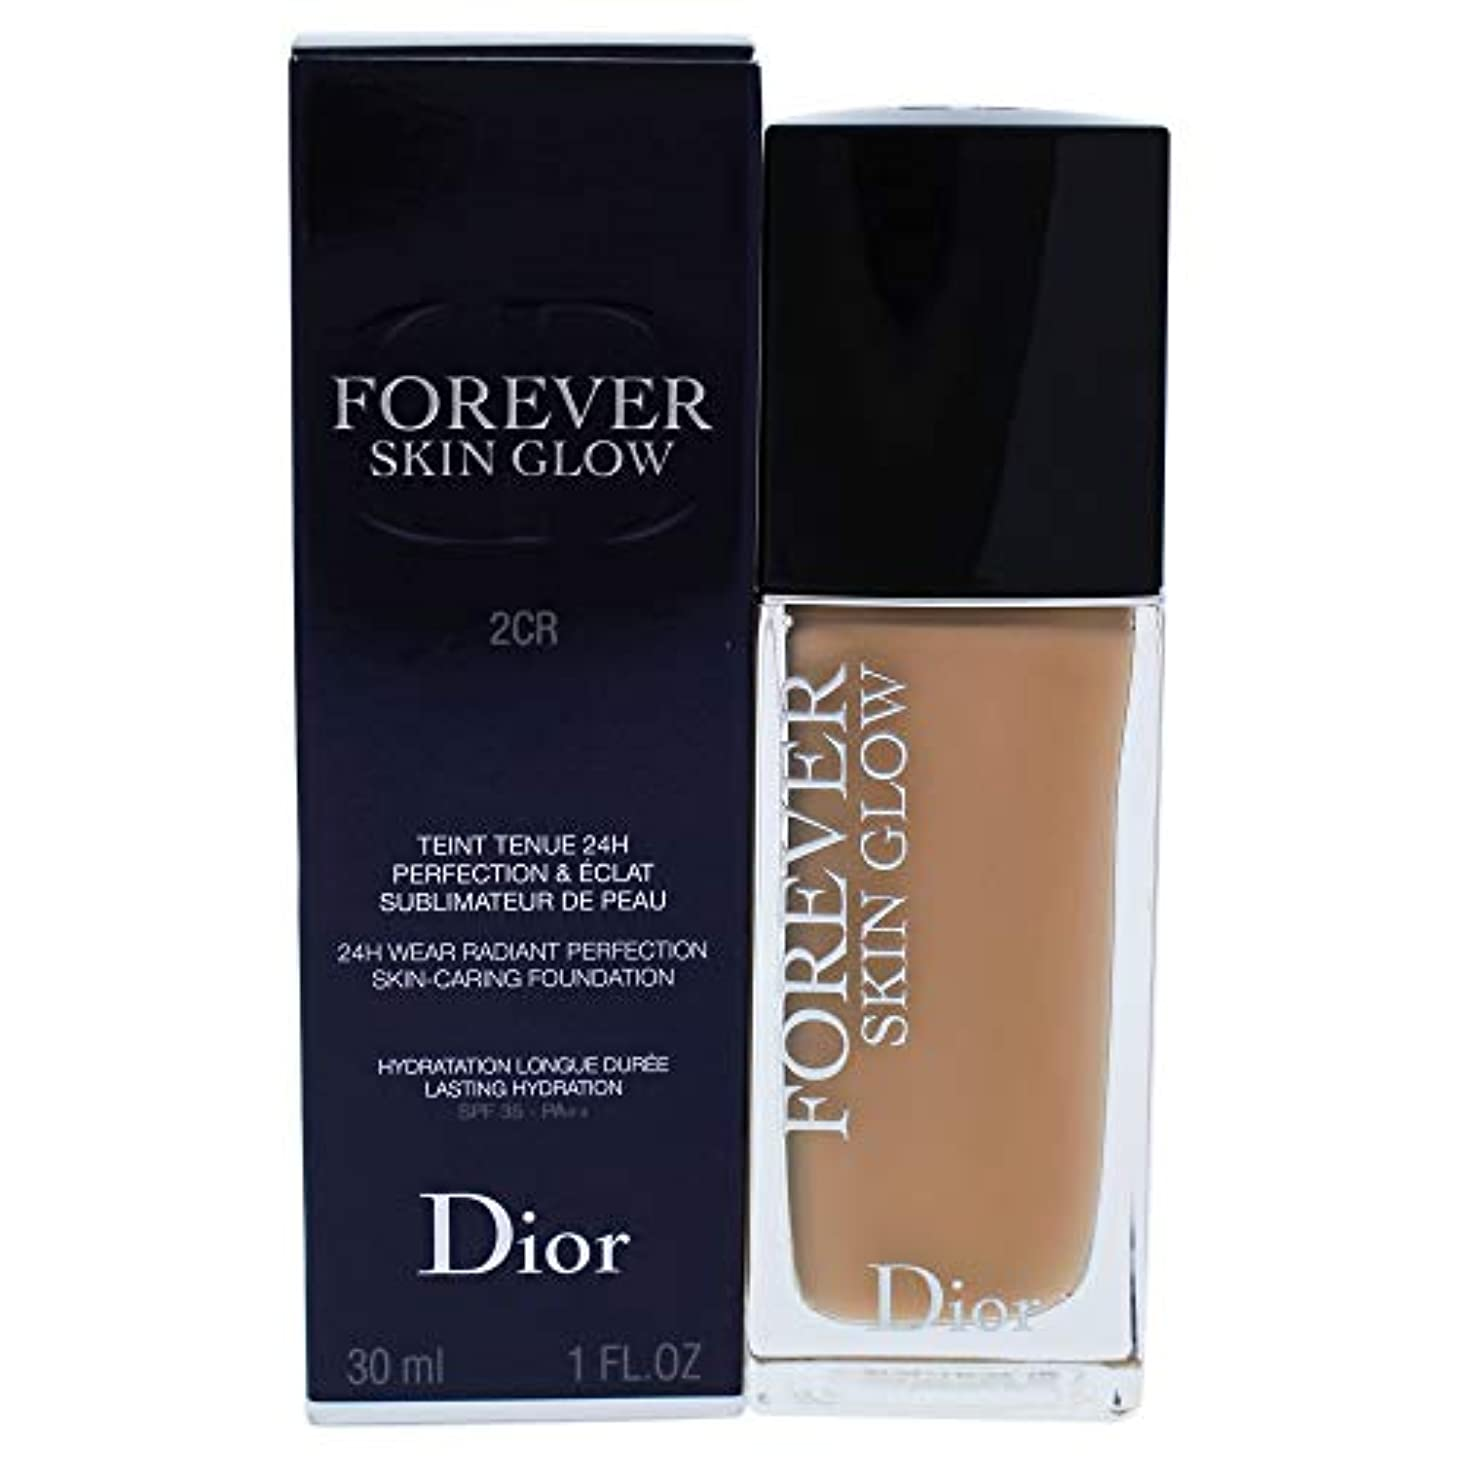 創始者極地ミンチクリスチャンディオール Dior Forever Skin Glow 24H Wear High Perfection Foundation SPF 35 - # 2CR (Cool Rosy) 30ml/1oz並行輸入品